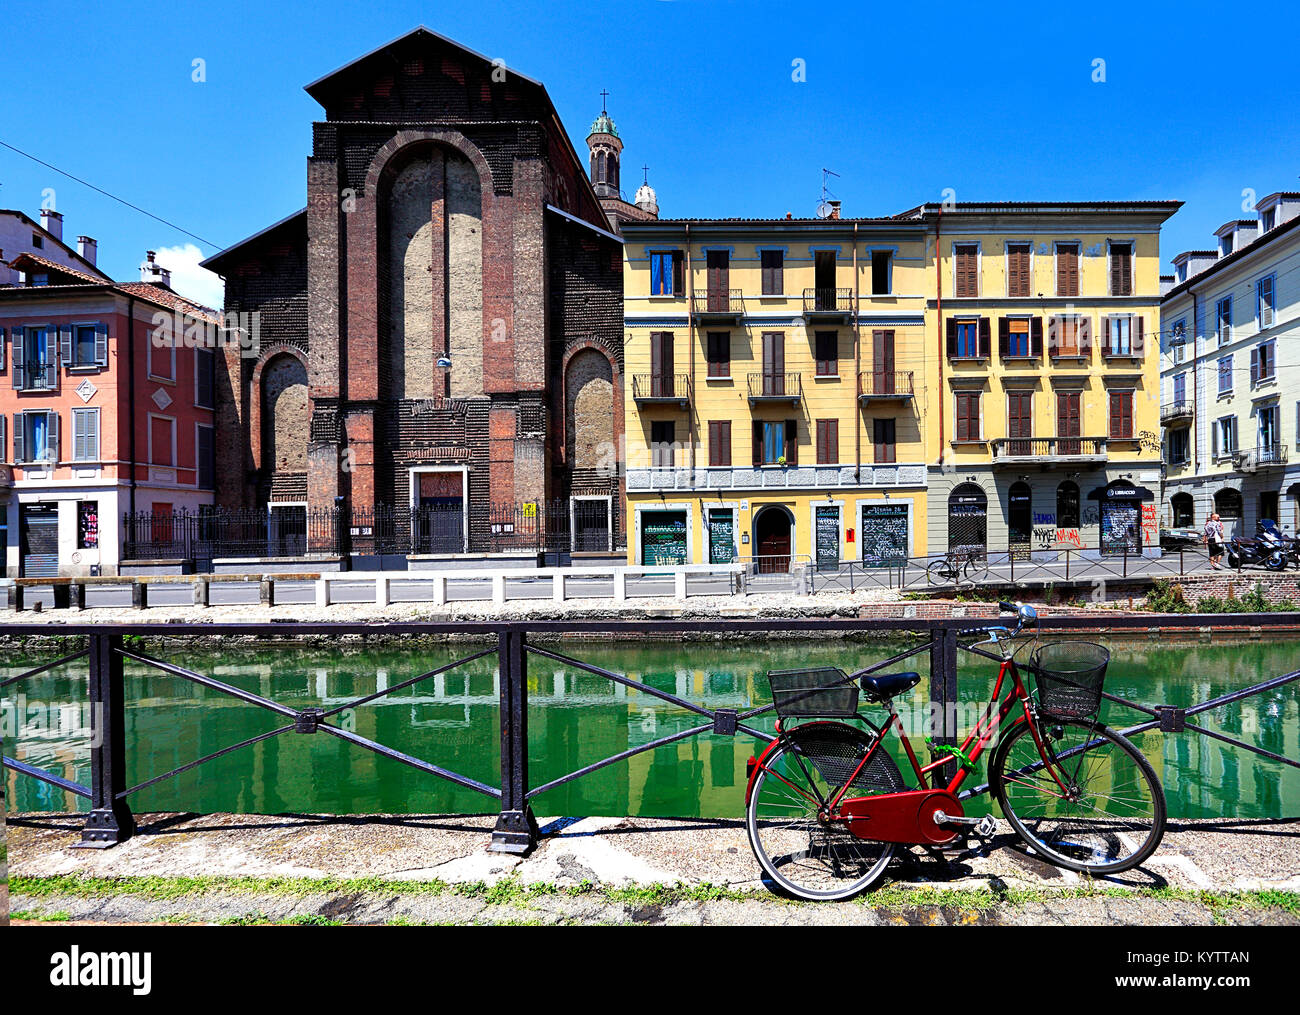 Italy, Lombardy, Milan - 2012/07/08: Italy - Lombardy - Milan - Naviglio district - Naviglio Grande canal and surrounding - Stock Image